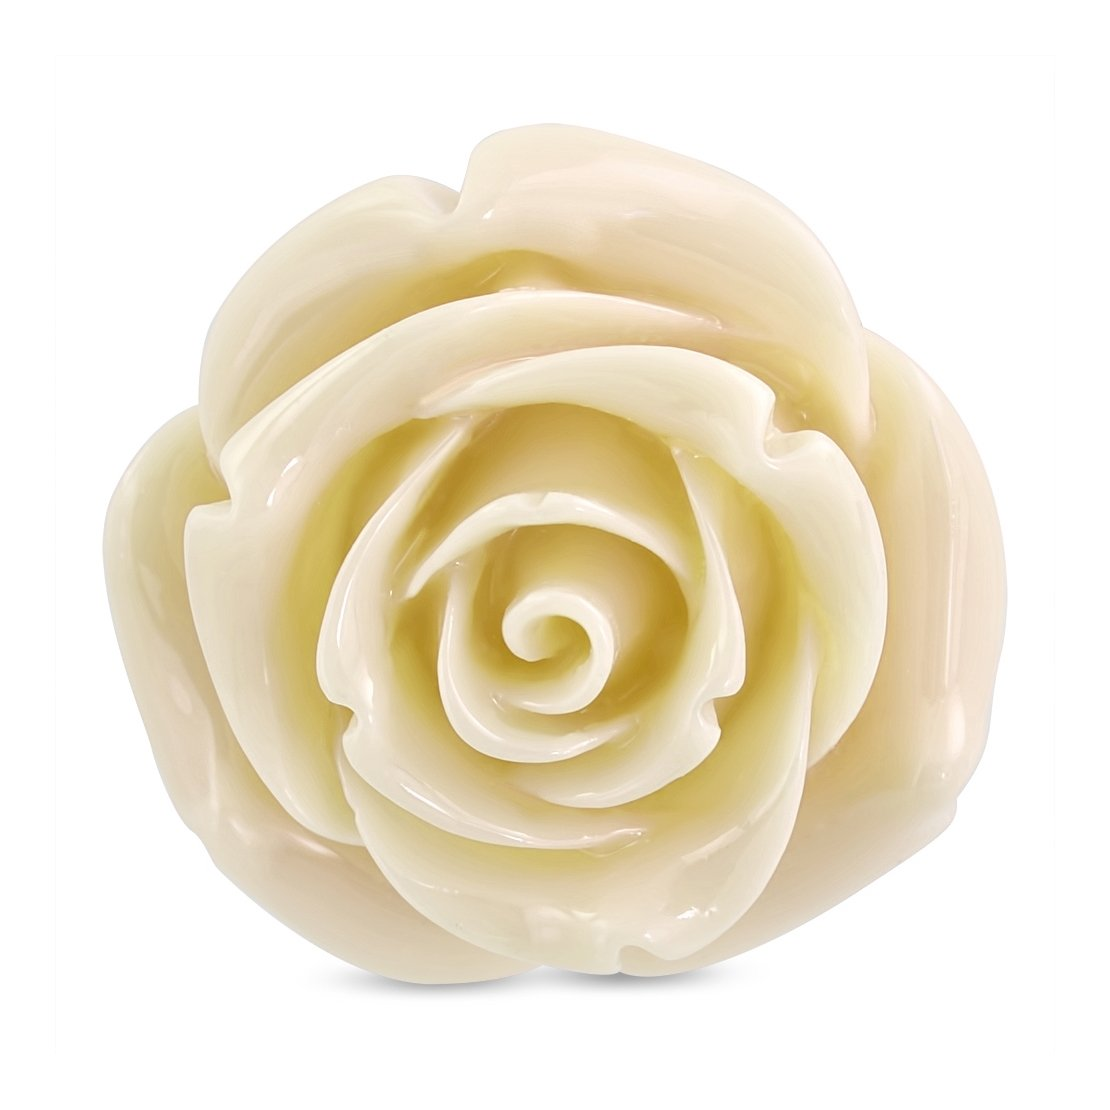 Stainless Steel Cream Ivory Resin Single Bloom Rose Flower Comfort Fit Cocktail Ring